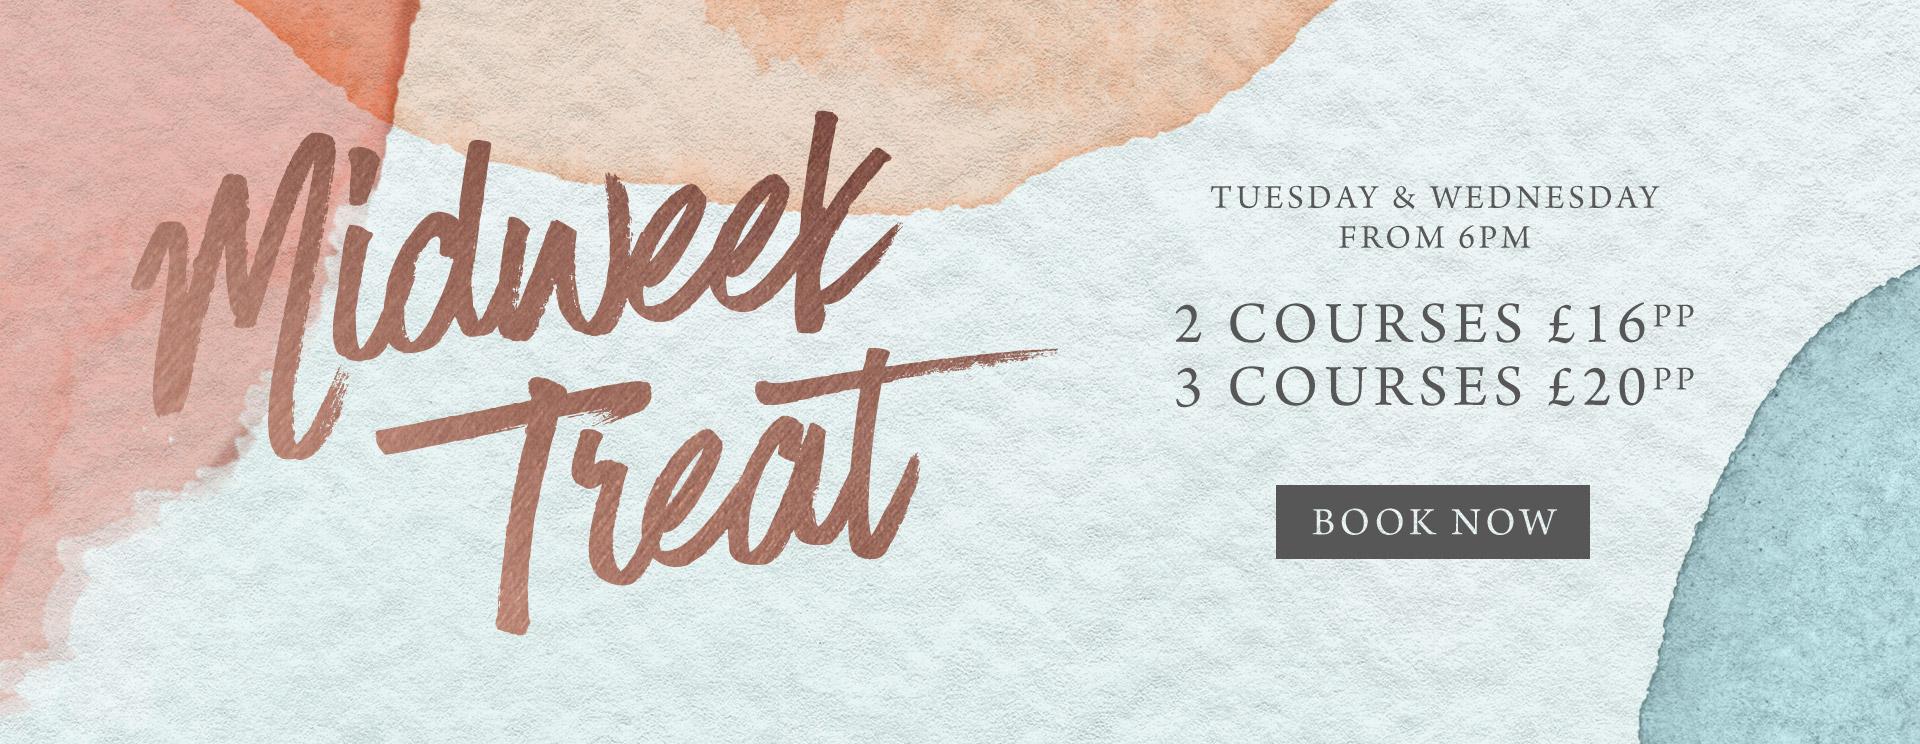 Midweek treat at The Encore - Book now